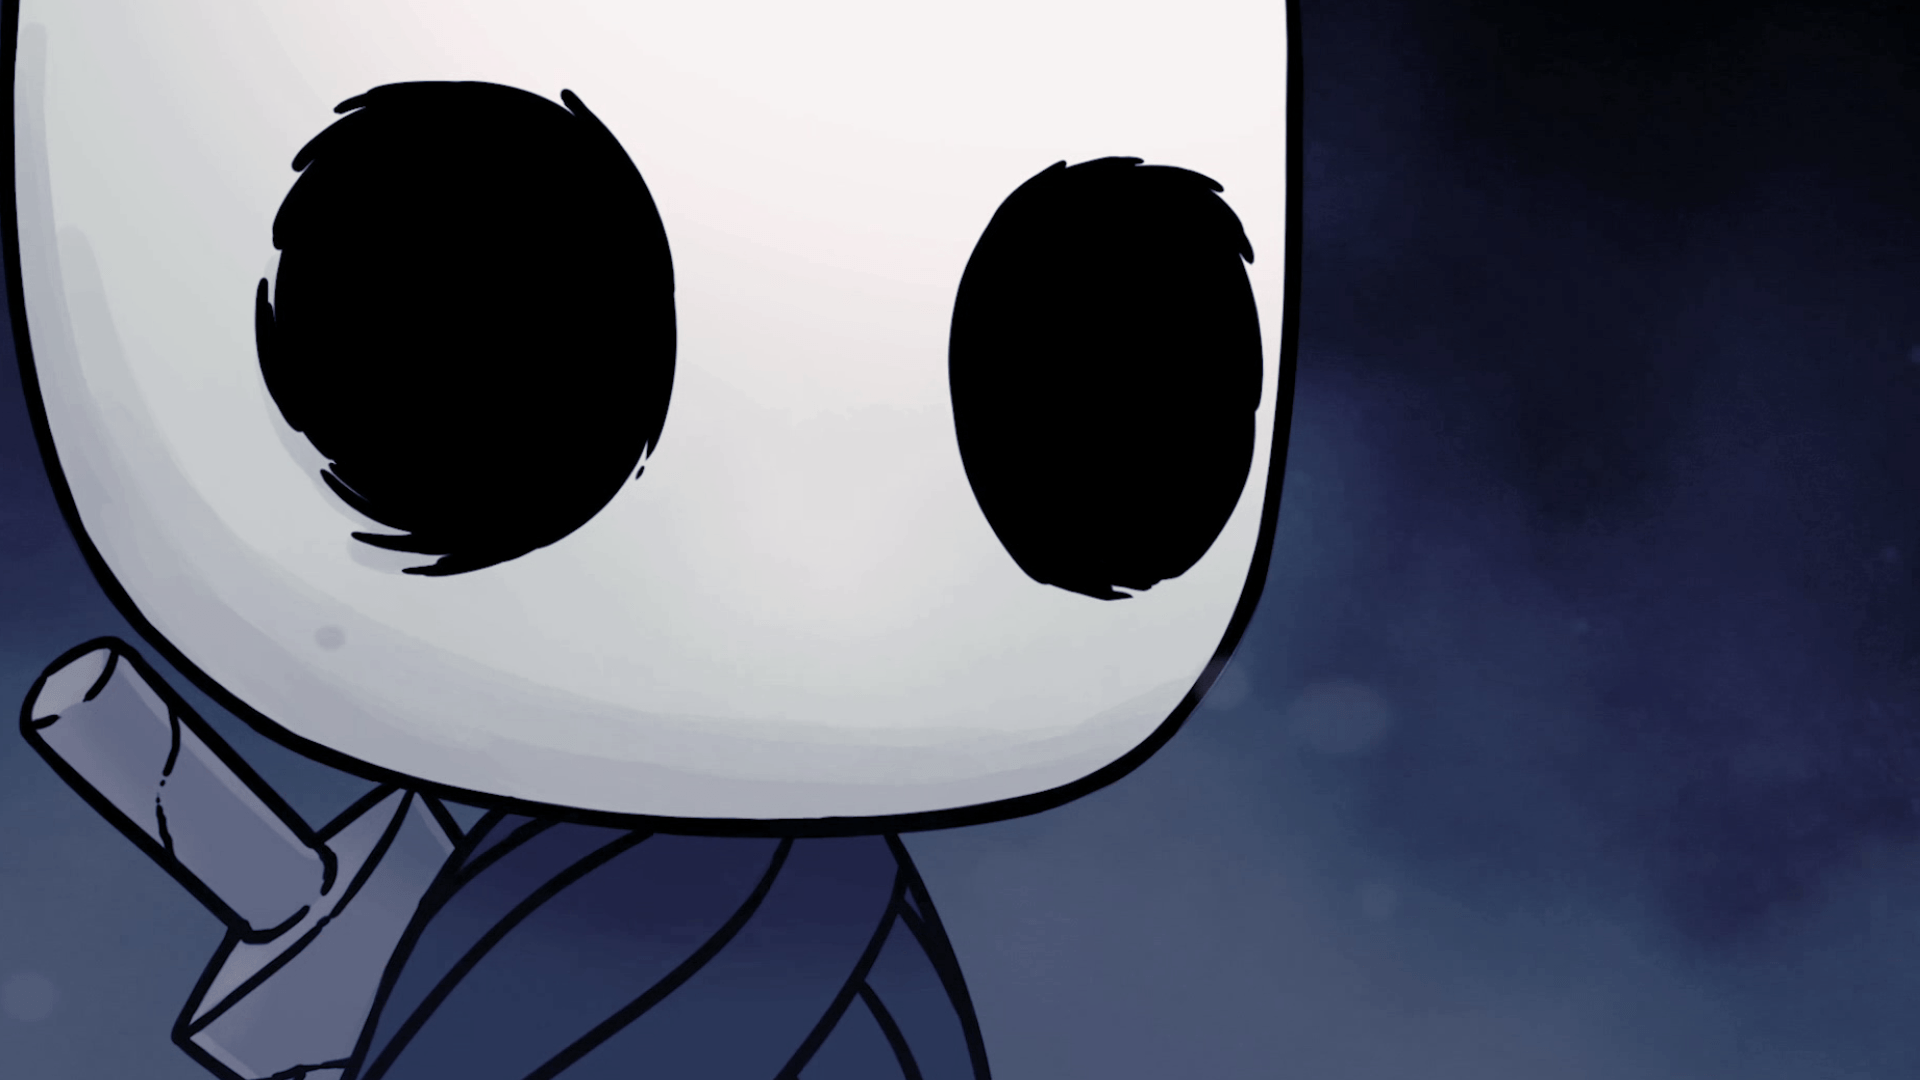 Game Hollow Knight Wallpapers